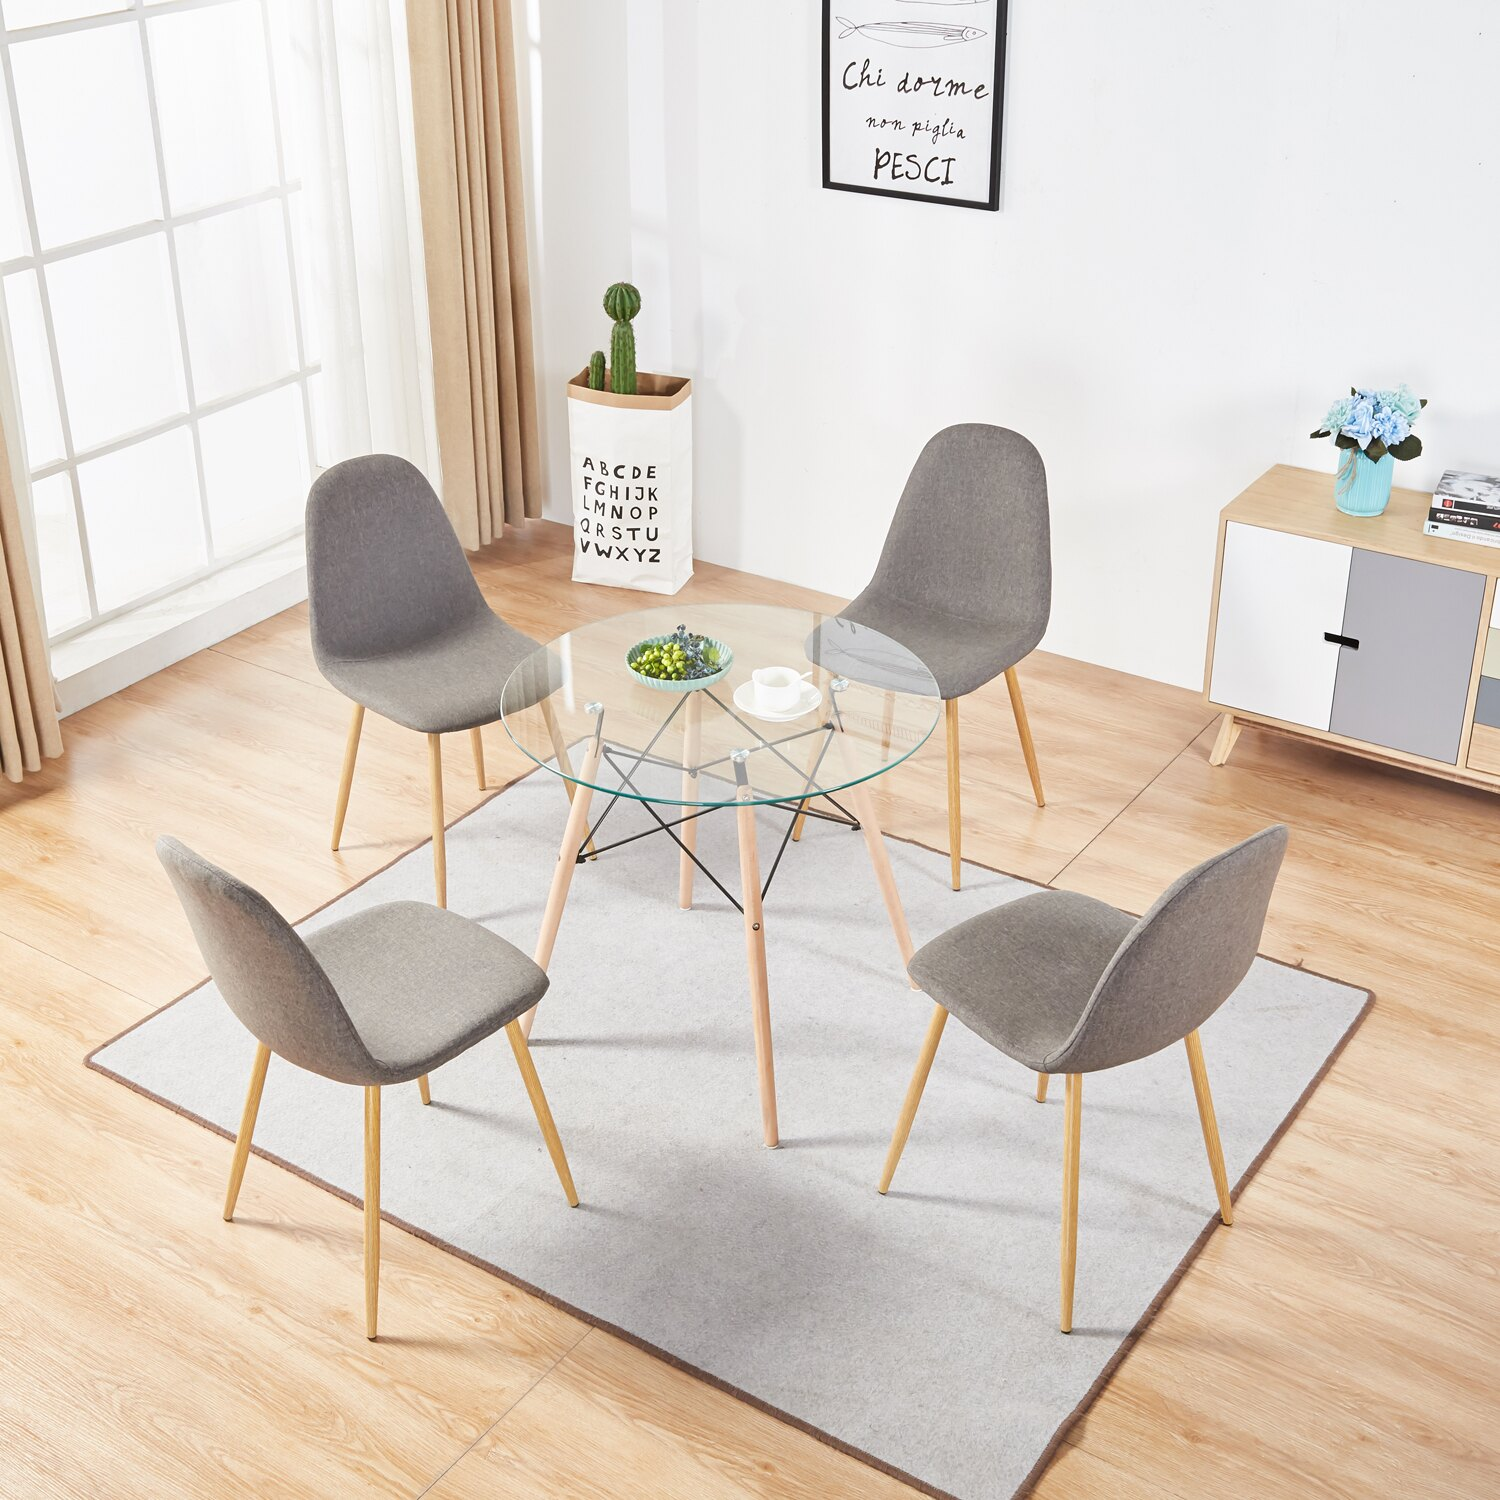 mcombo: Mcombo Dining Side Chairs Set of 4,Dining Table Round Clear Glass  Table for Kitchen Dining Room | Rakuten.com